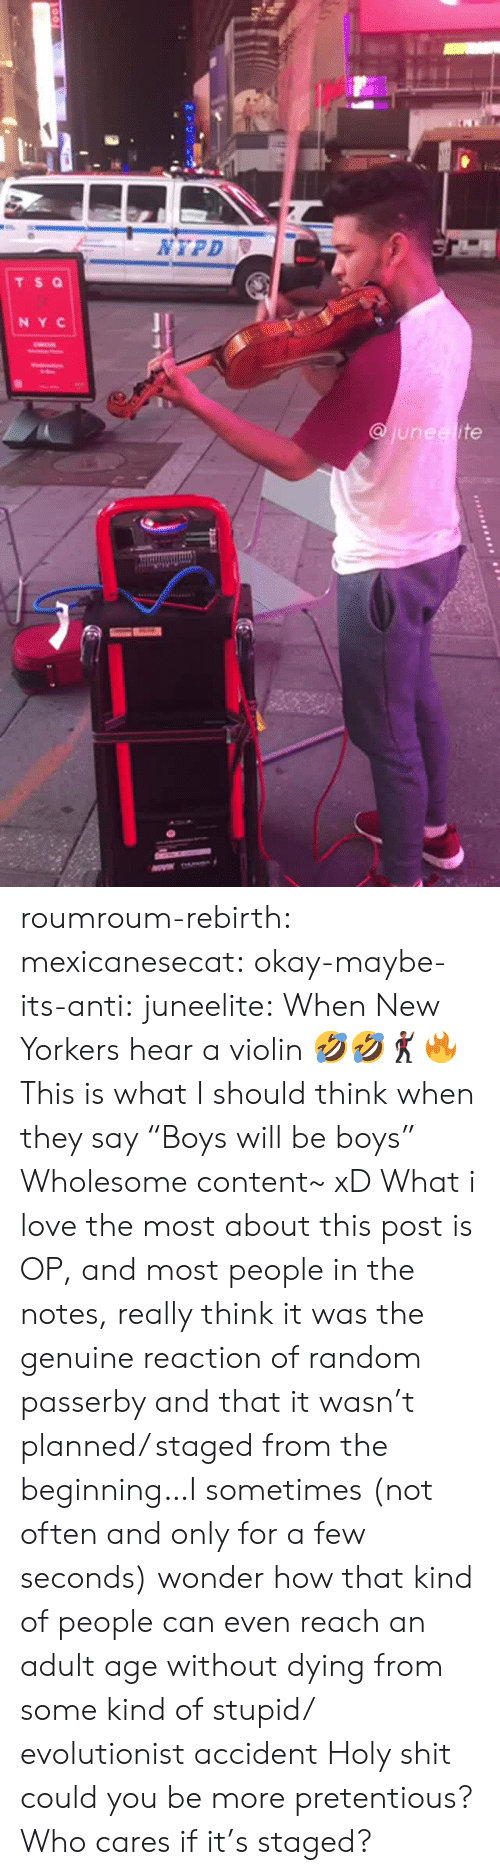 "Love, Pretentious, and Shit: NYPD  TS Q  NY C  junee ite roumroum-rebirth:  mexicanesecat:  okay-maybe-its-anti:  juneelite: When New Yorkers hear a violin 🤣🤣🕺🏾🔥  This is what I should think when they say ""Boys will be boys""  Wholesome content~ xD  What i love the most about this post is OP, and most people in the notes, really think it was the genuine reaction of random passerby and that it wasn't planned/ staged from the beginning…I sometimes (not often and only for a few seconds) wonder how that kind of people can even reach an adult age without dying from some kind of stupid/ evolutionist accident  Holy shit could you be more pretentious? Who cares if it's staged?"